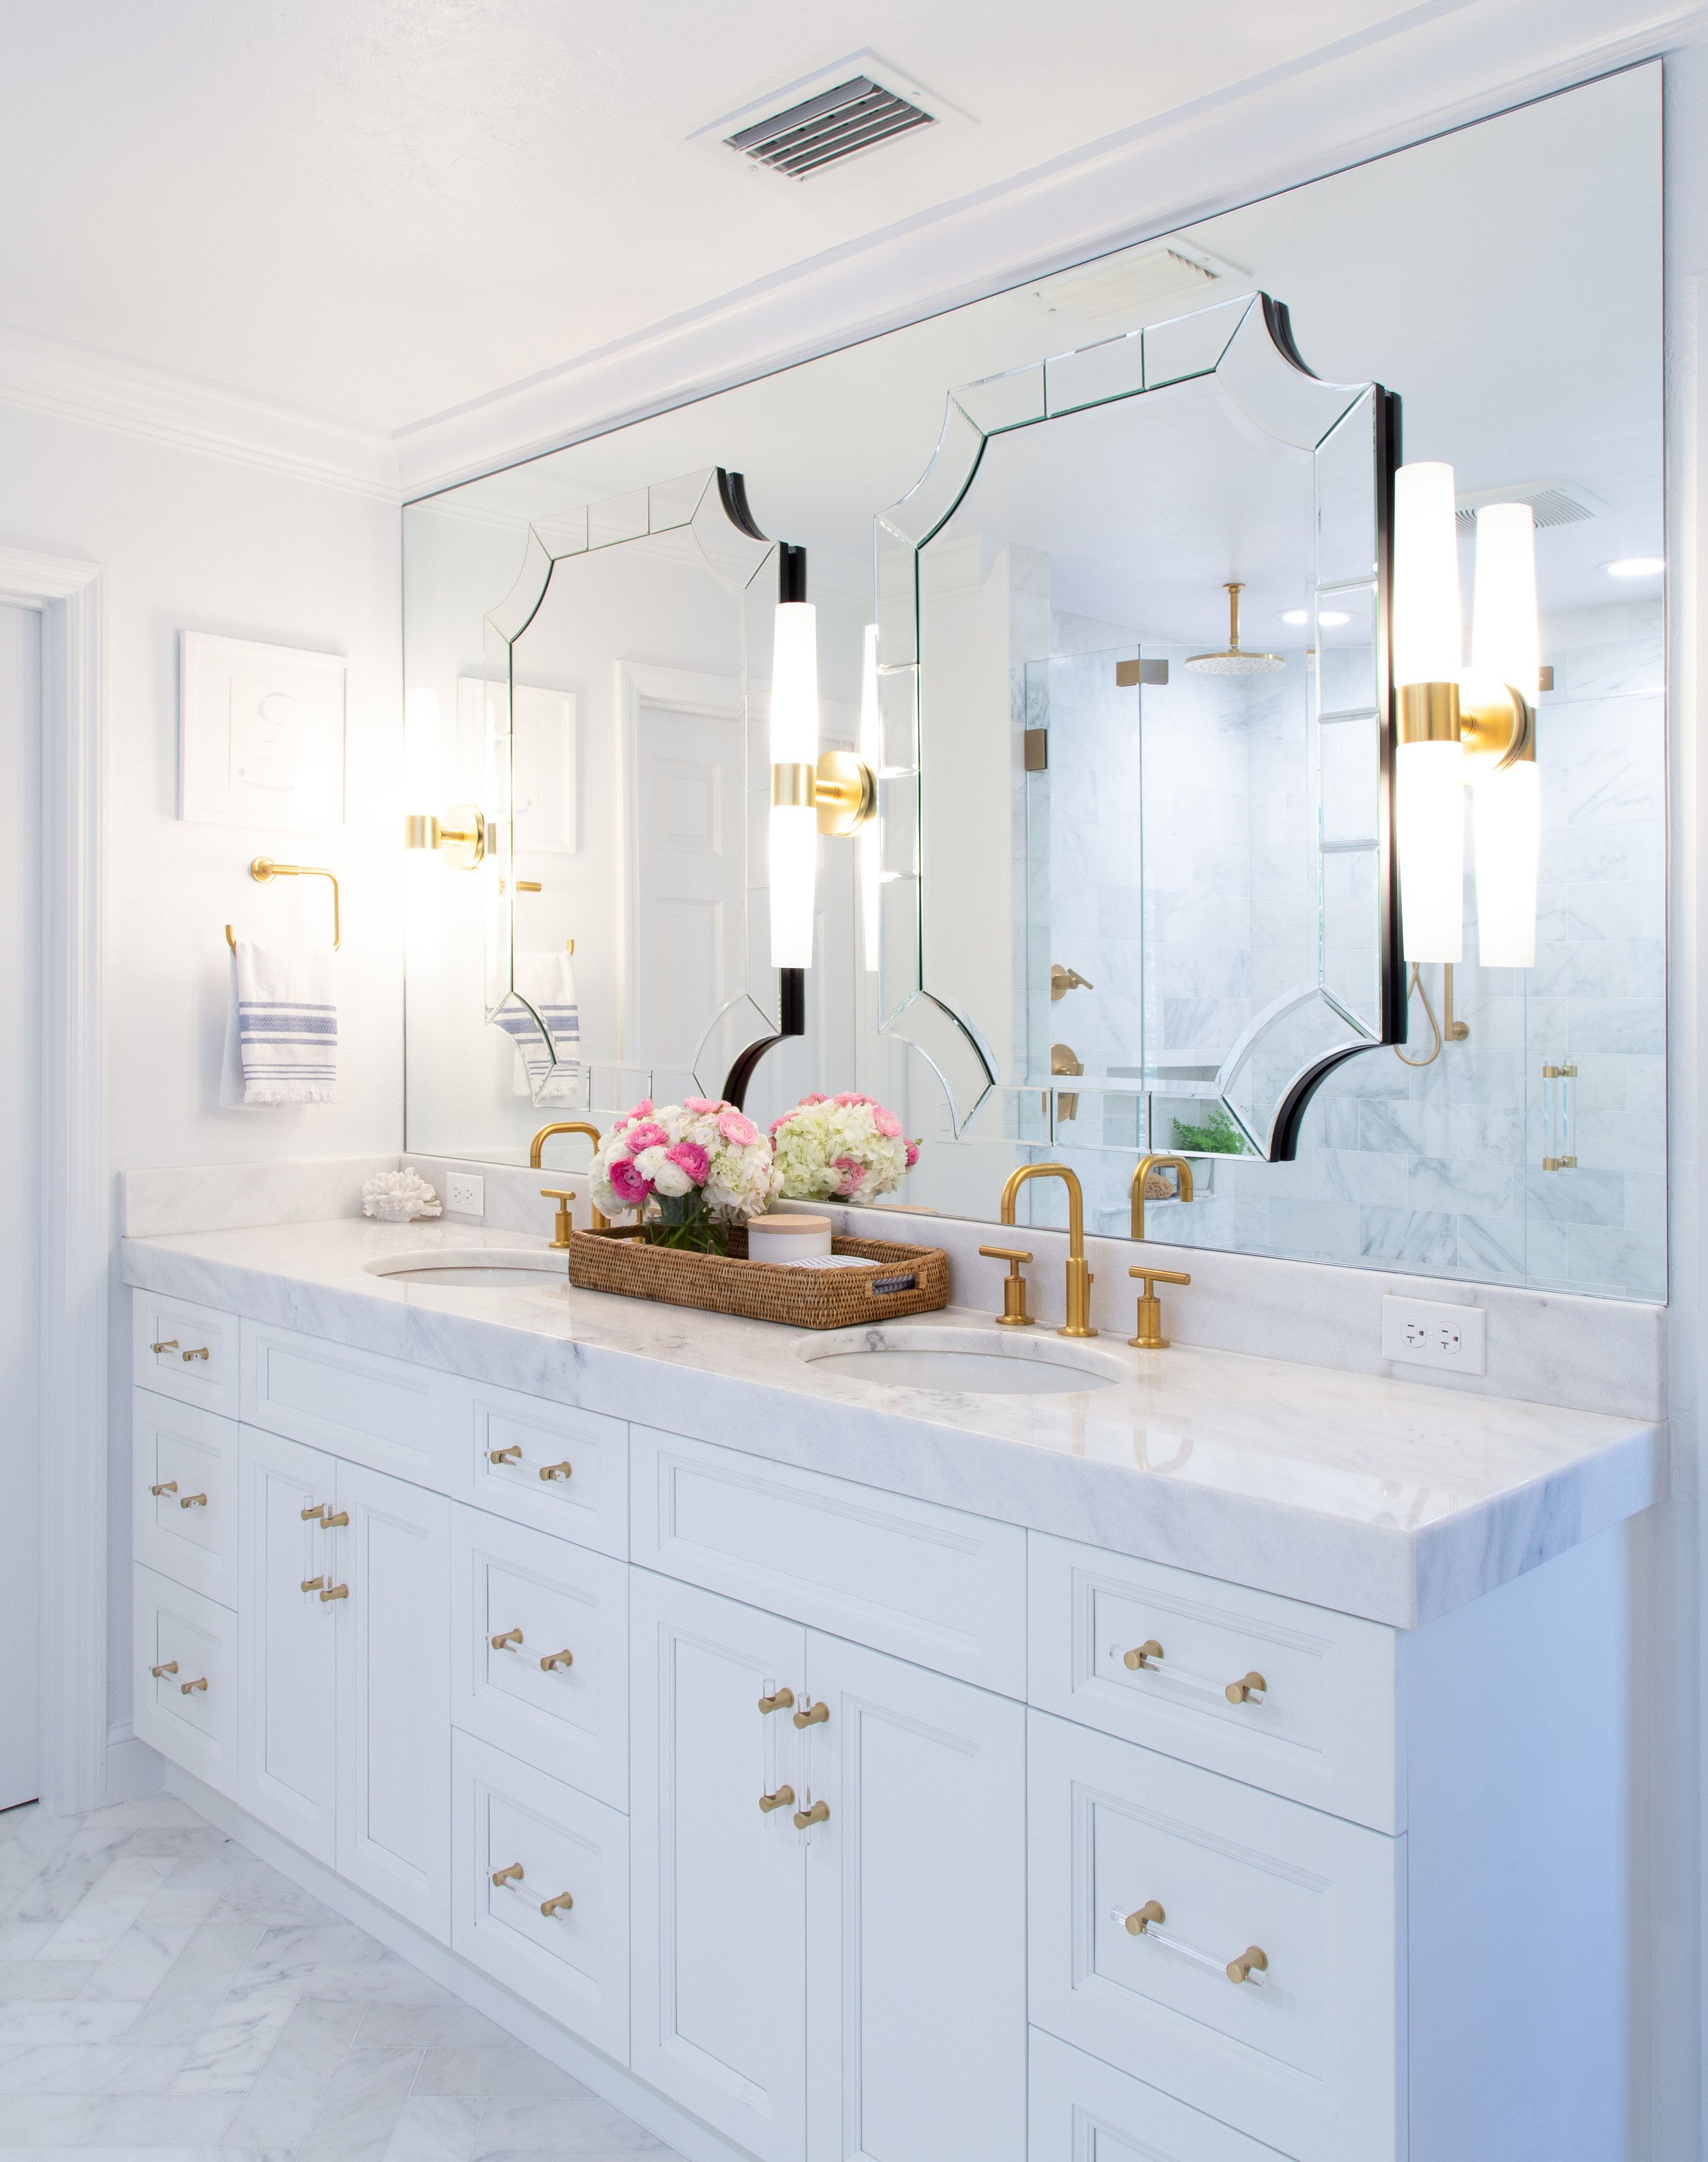 Full Mirror Wall Behind The Vanity With A Pair Of Mirrors Layered Over It Sconces In Be Art Deco Bathroom Vanity Decorative Bathroom Mirrors Elegant Bathroom [ 3165 x 2500 Pixel ]